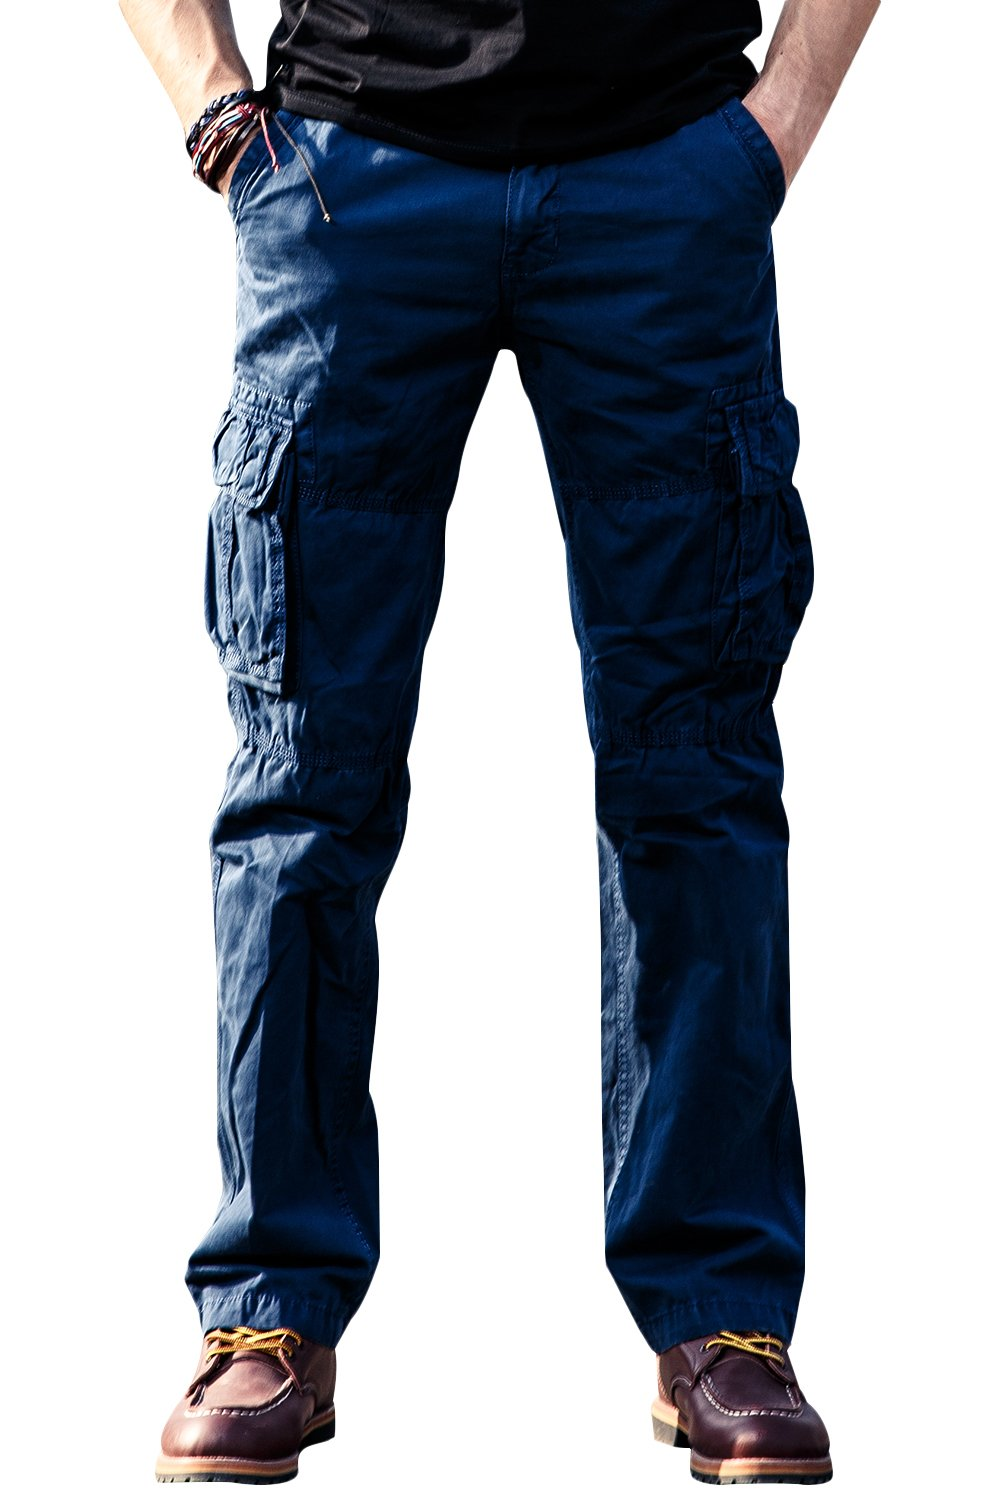 Men's Cargo Pants Work Trousers casual Pants CASE ME CA3225